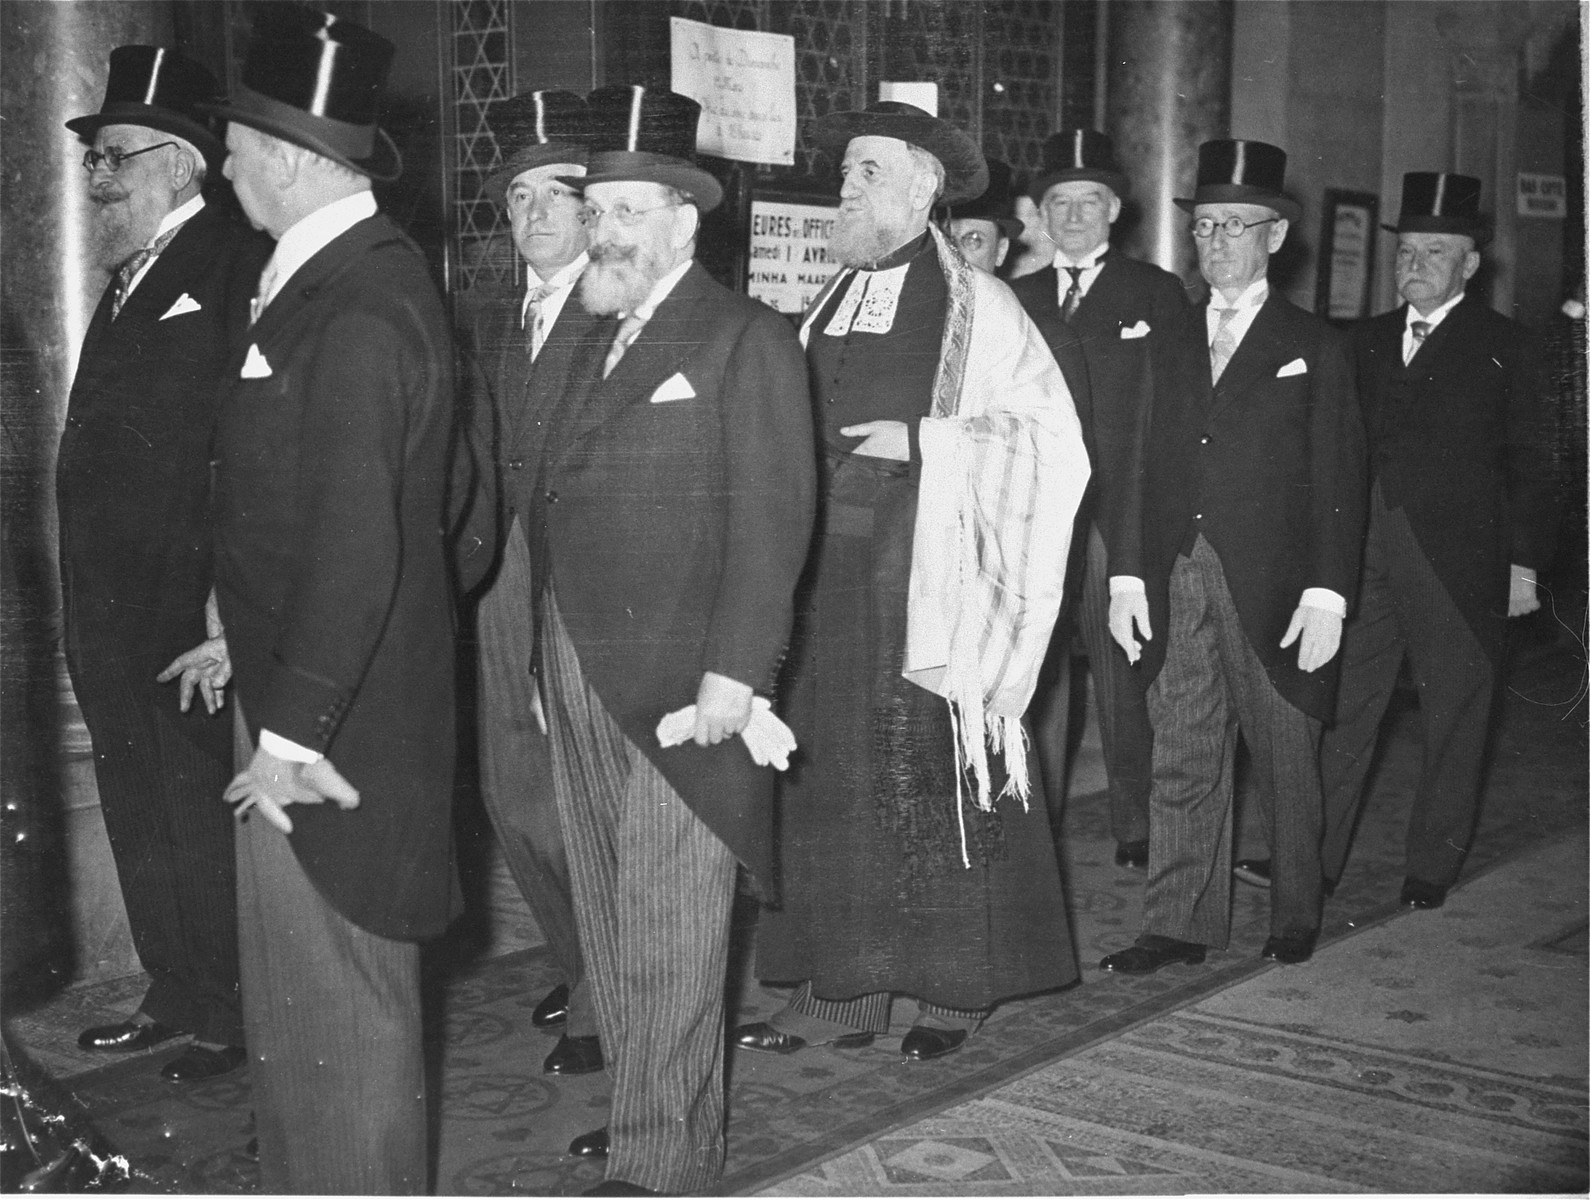 Rabbi Isaie Schwartz is escorted by leaders of the Jewish community to the synagogue where he will be installed as the new Chief Rabbi of France.